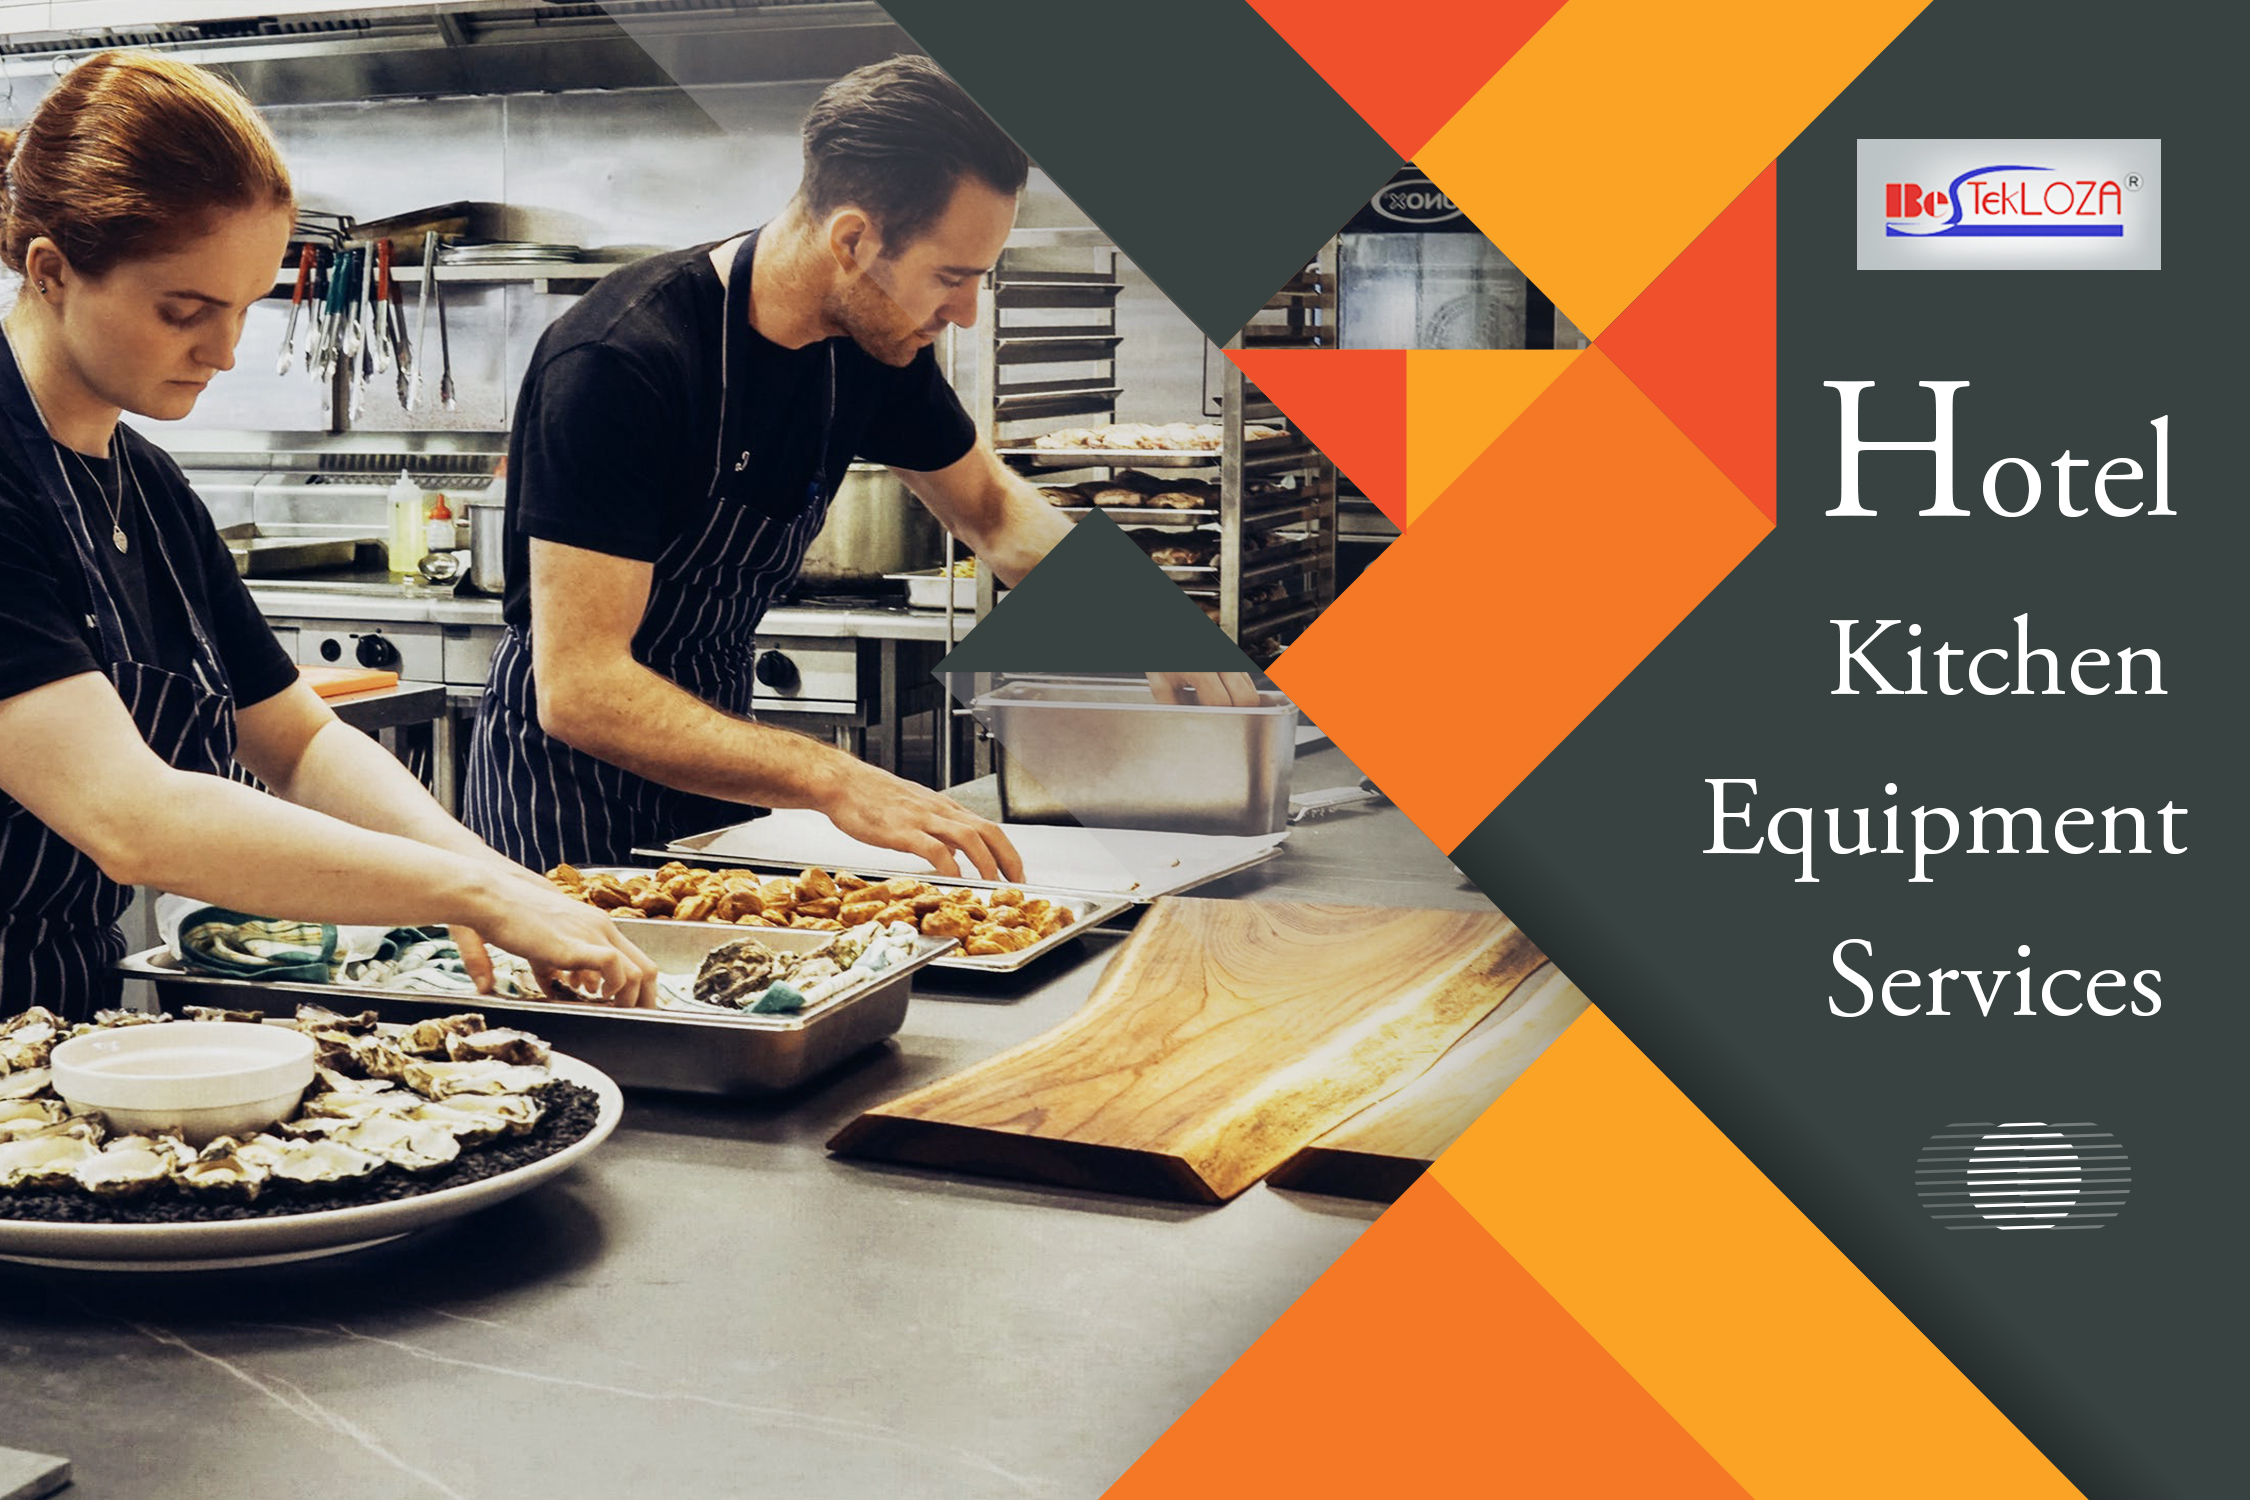 Flawless equipments are the soul of every restaurant kitchen.